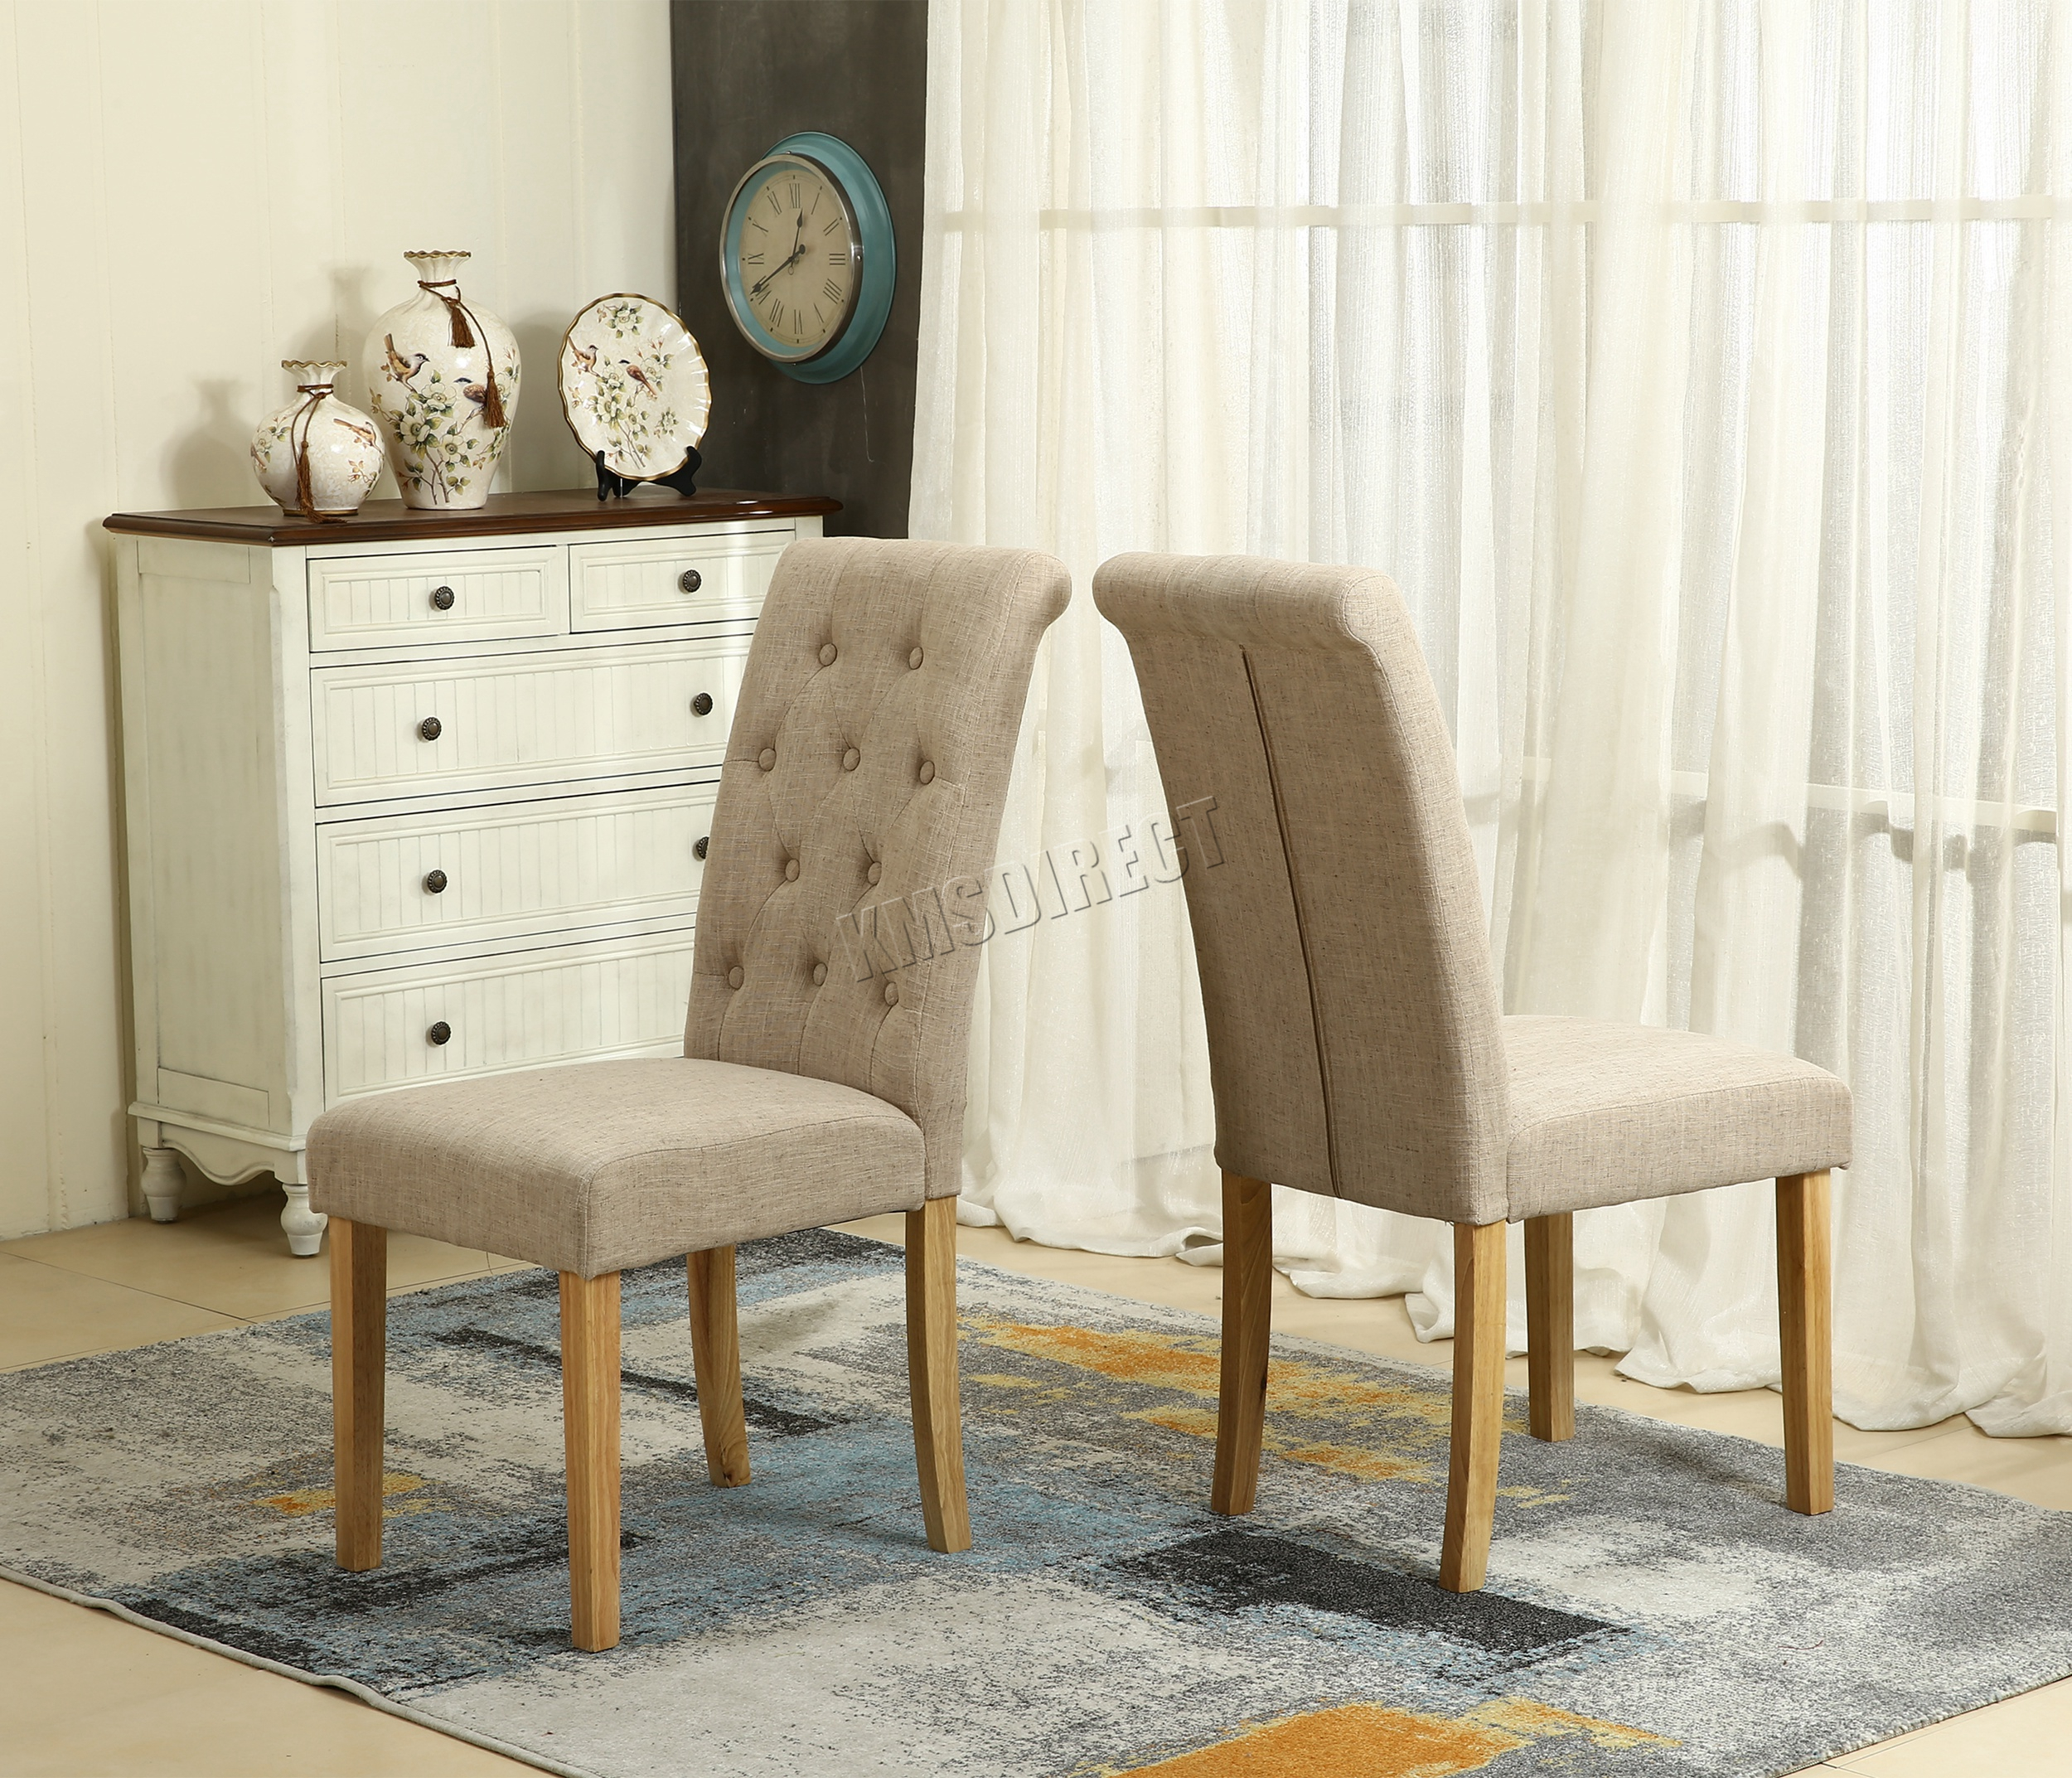 westwood cream linen fabric dining chairs scroll high back office room dcf02 x2 ebay. Black Bedroom Furniture Sets. Home Design Ideas